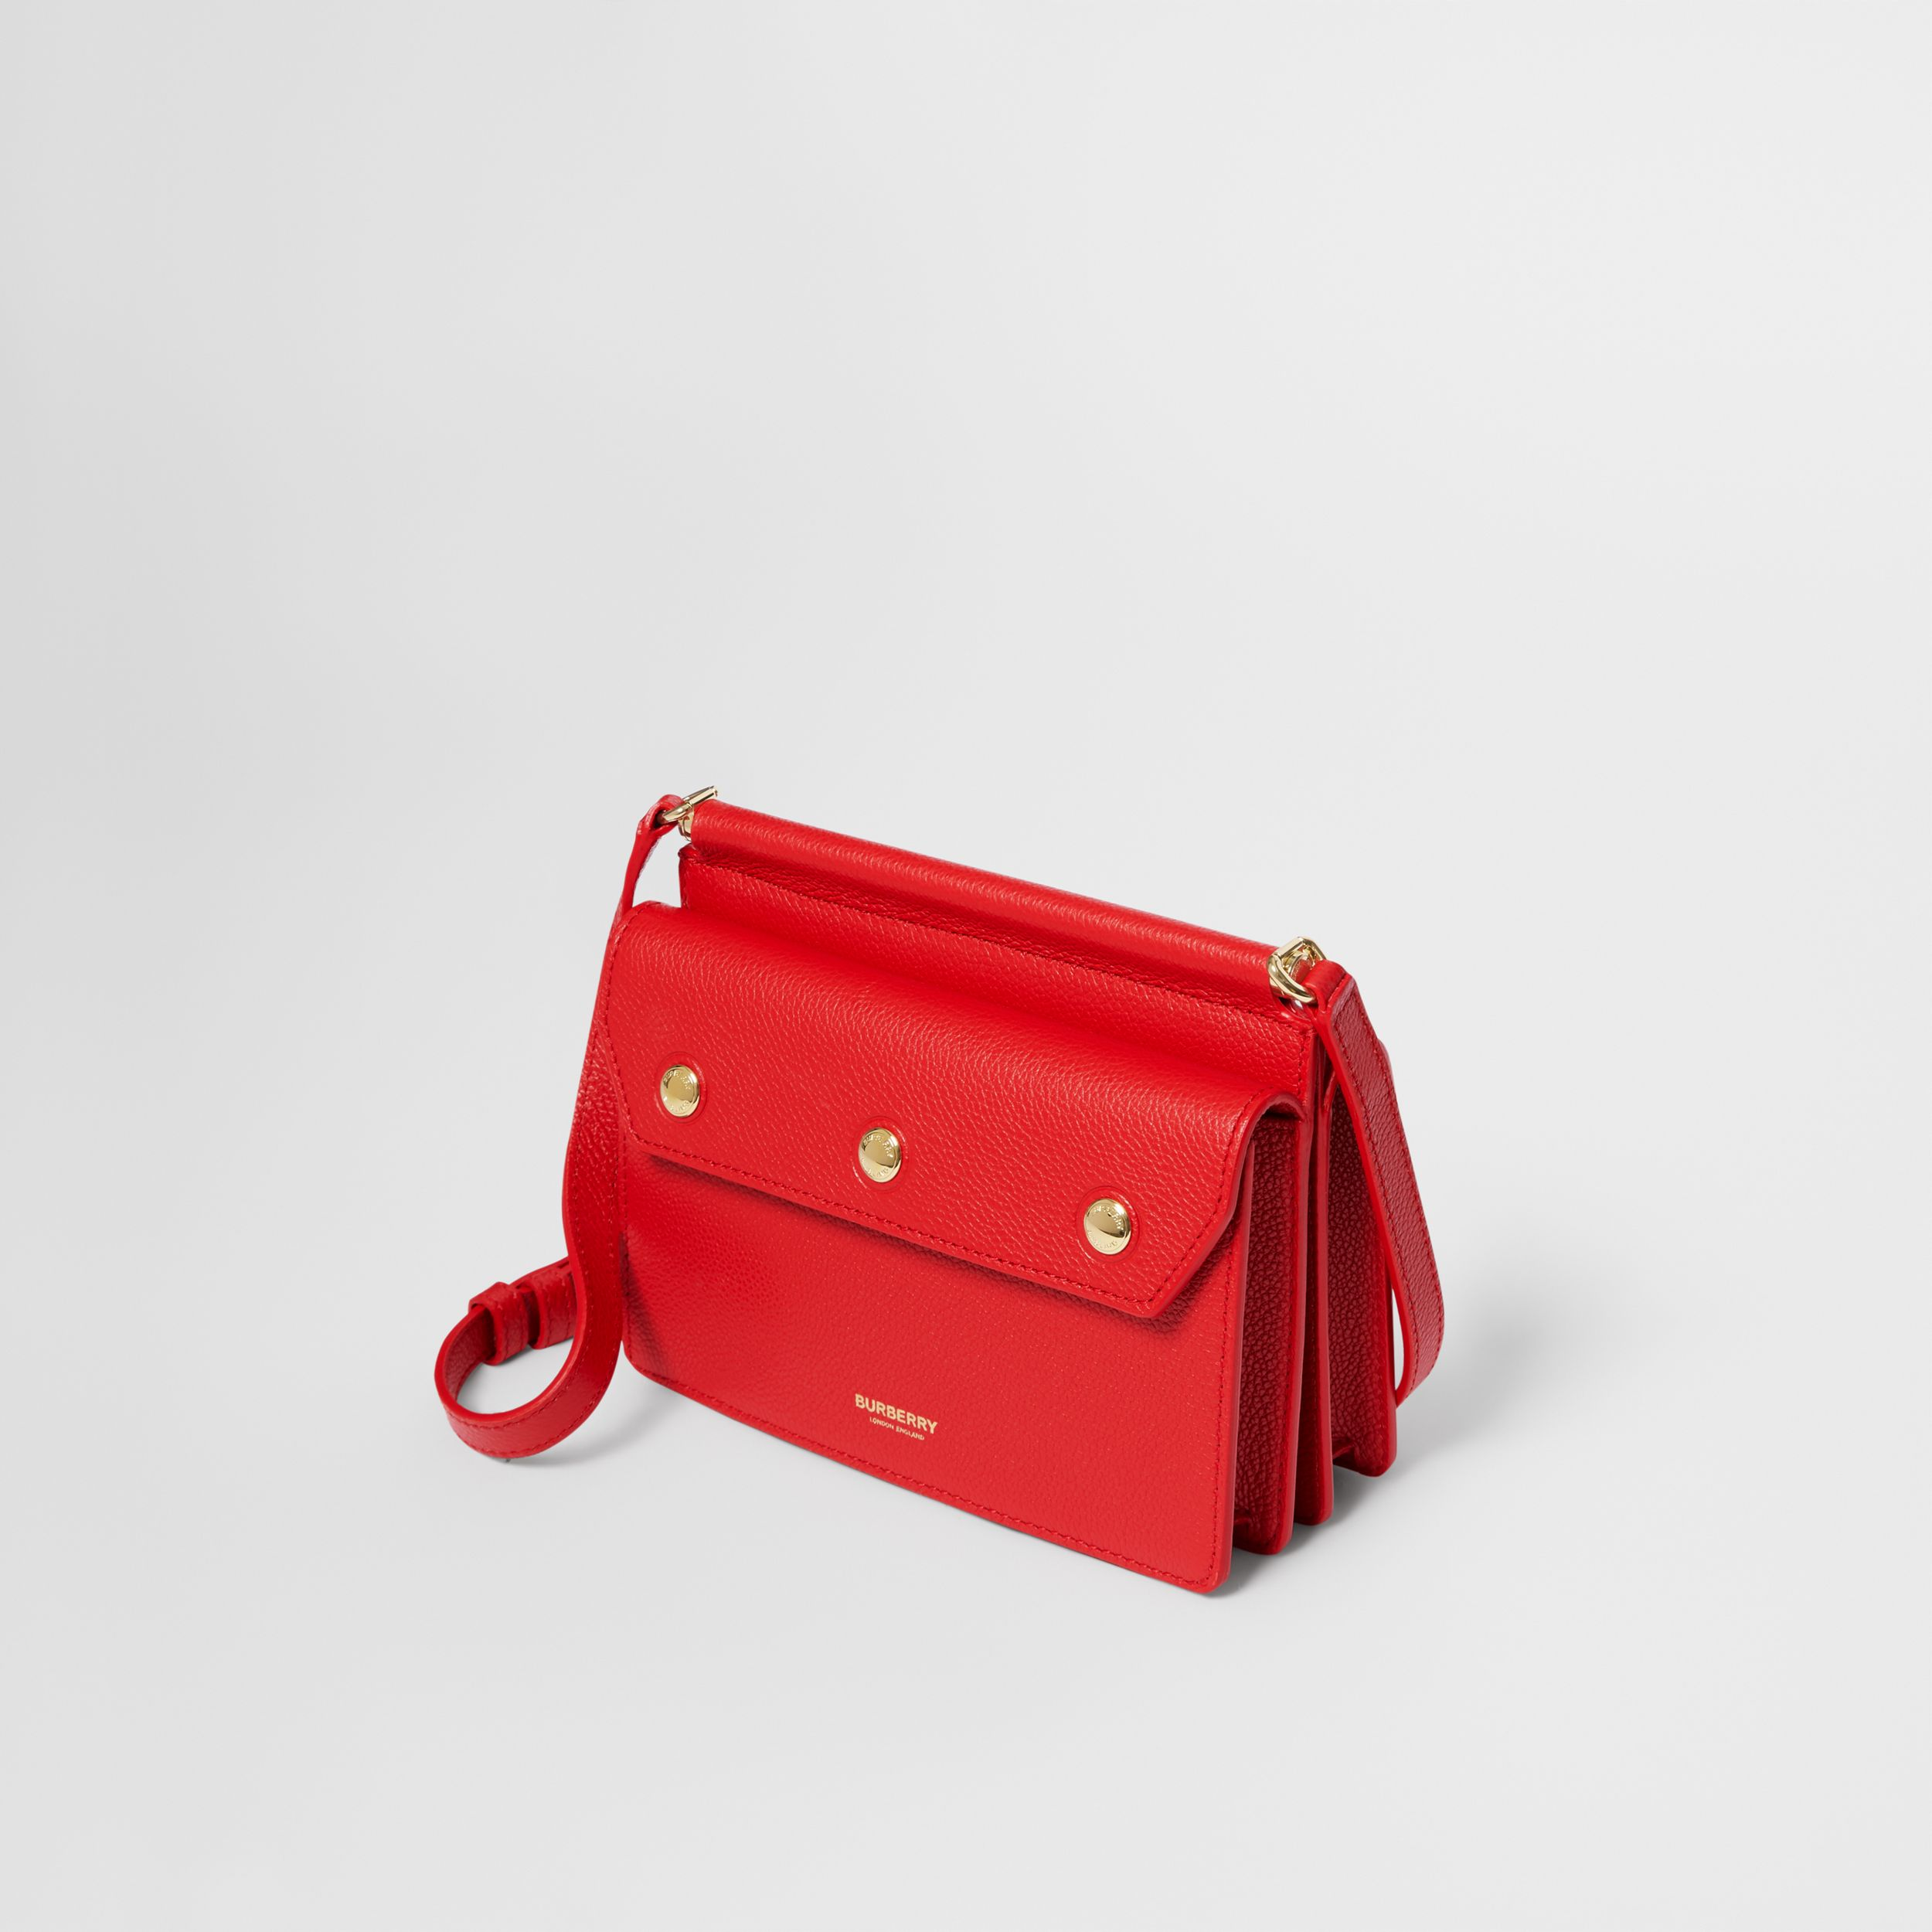 Mini Leather Title Bag with Pocket Detail in Bright Military Red - Women | Burberry Australia - 4